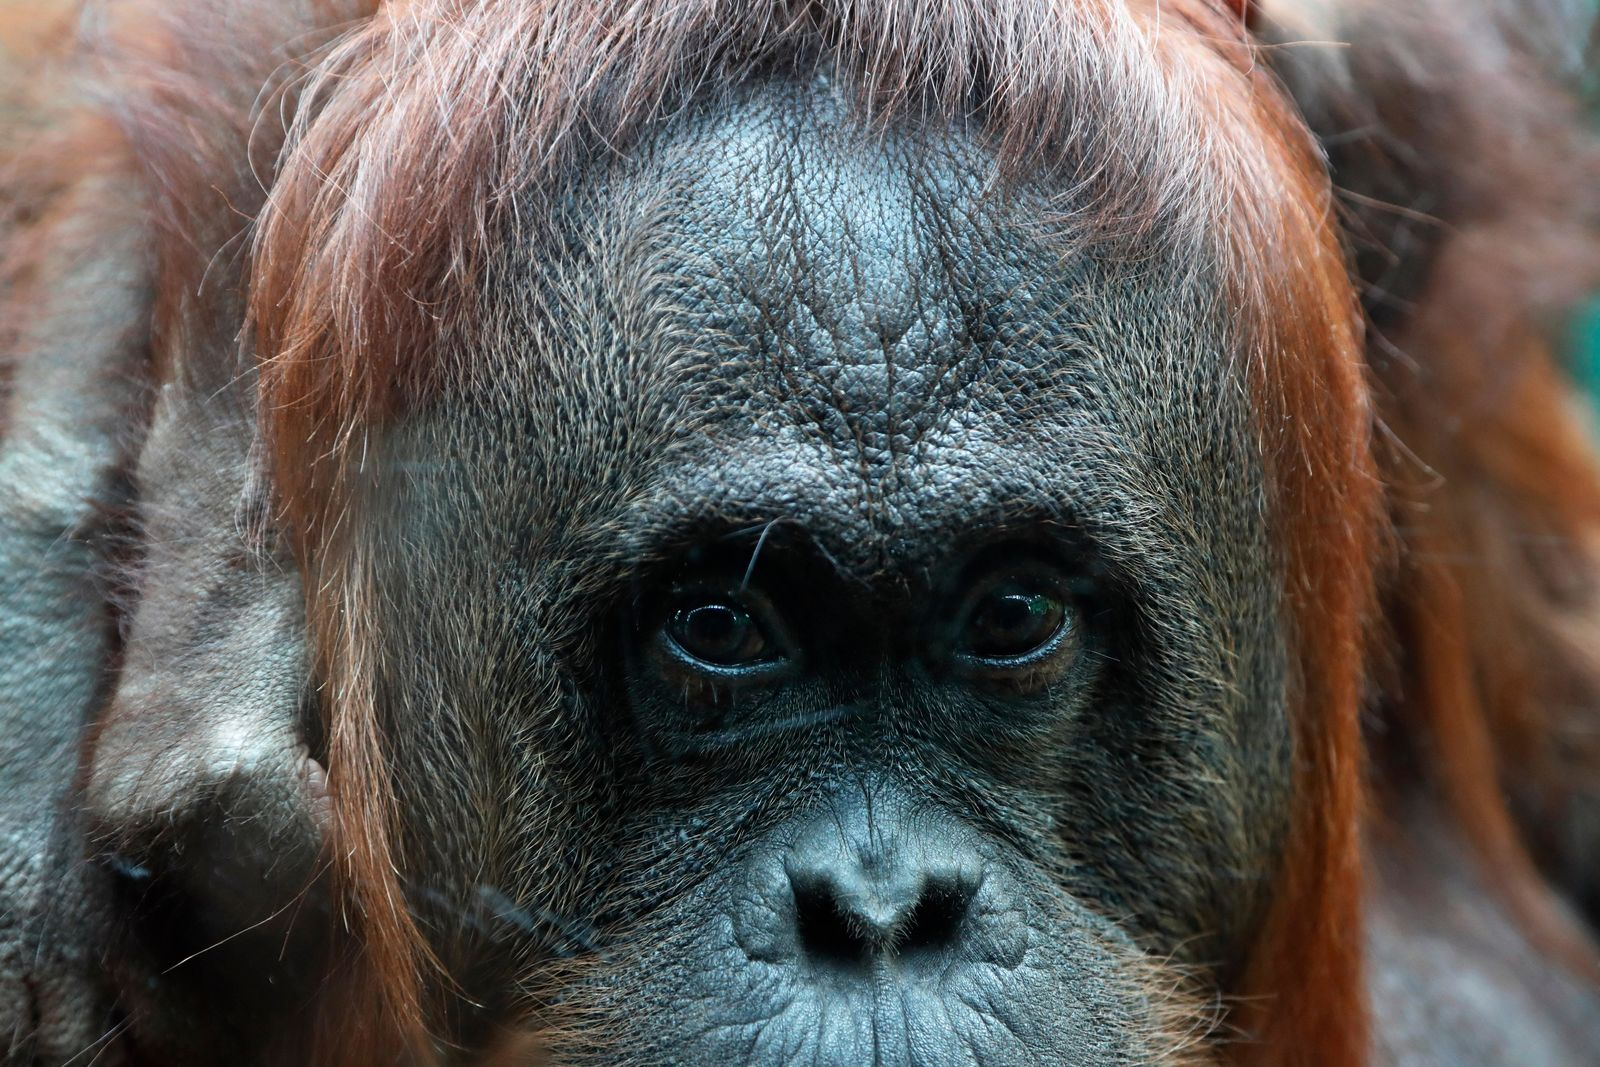 Orangutan Theodora looks at visitors, at the Jardin des Plantes zoo, in Paris, Sunday, June 16, 2019. (AP Photo/Thibault Camus)